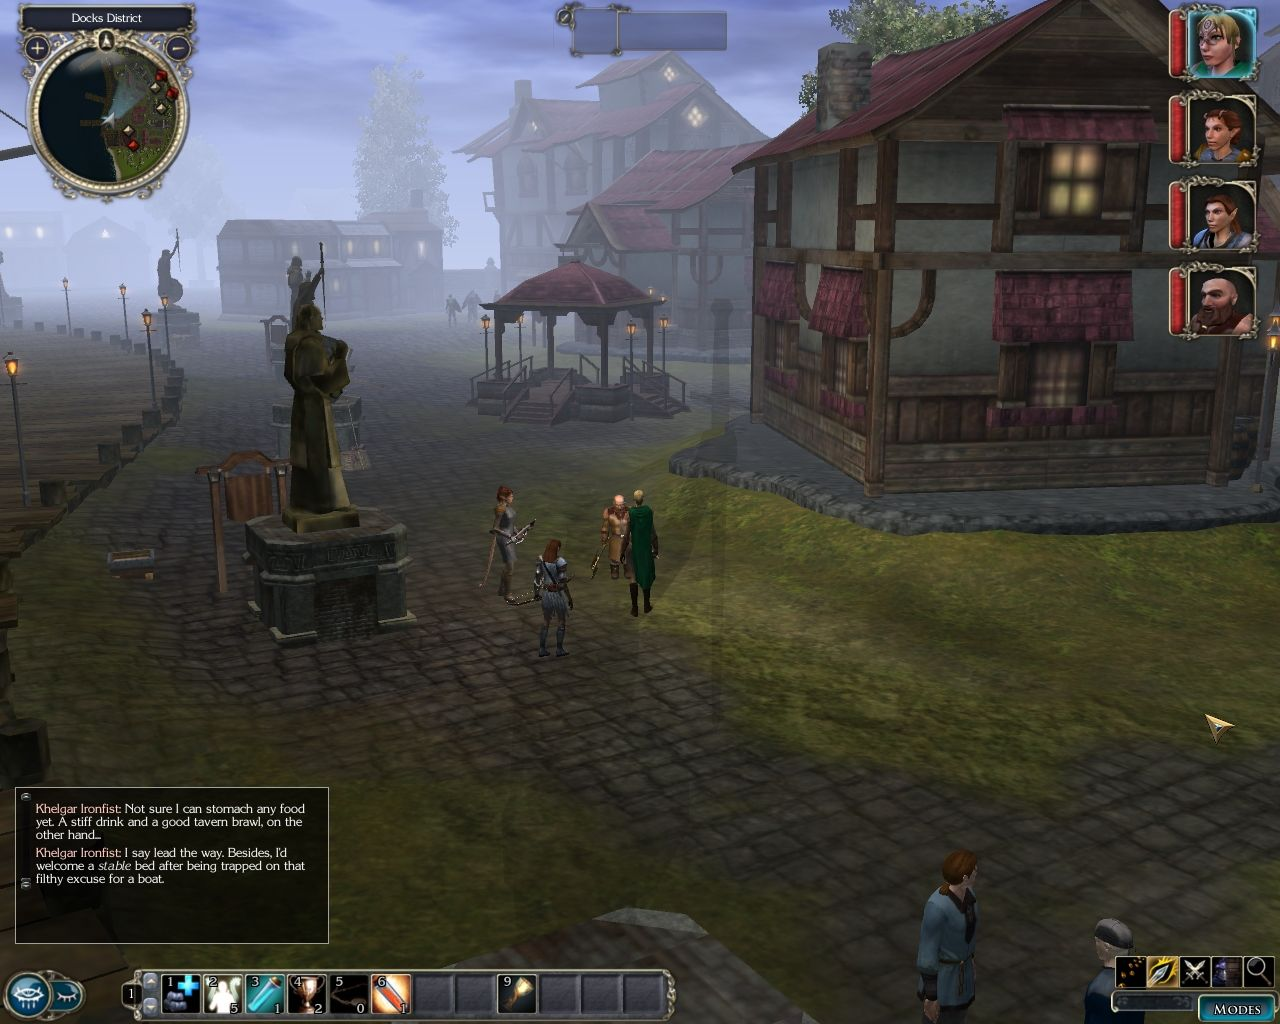 neverwinter how to use enchantments forum